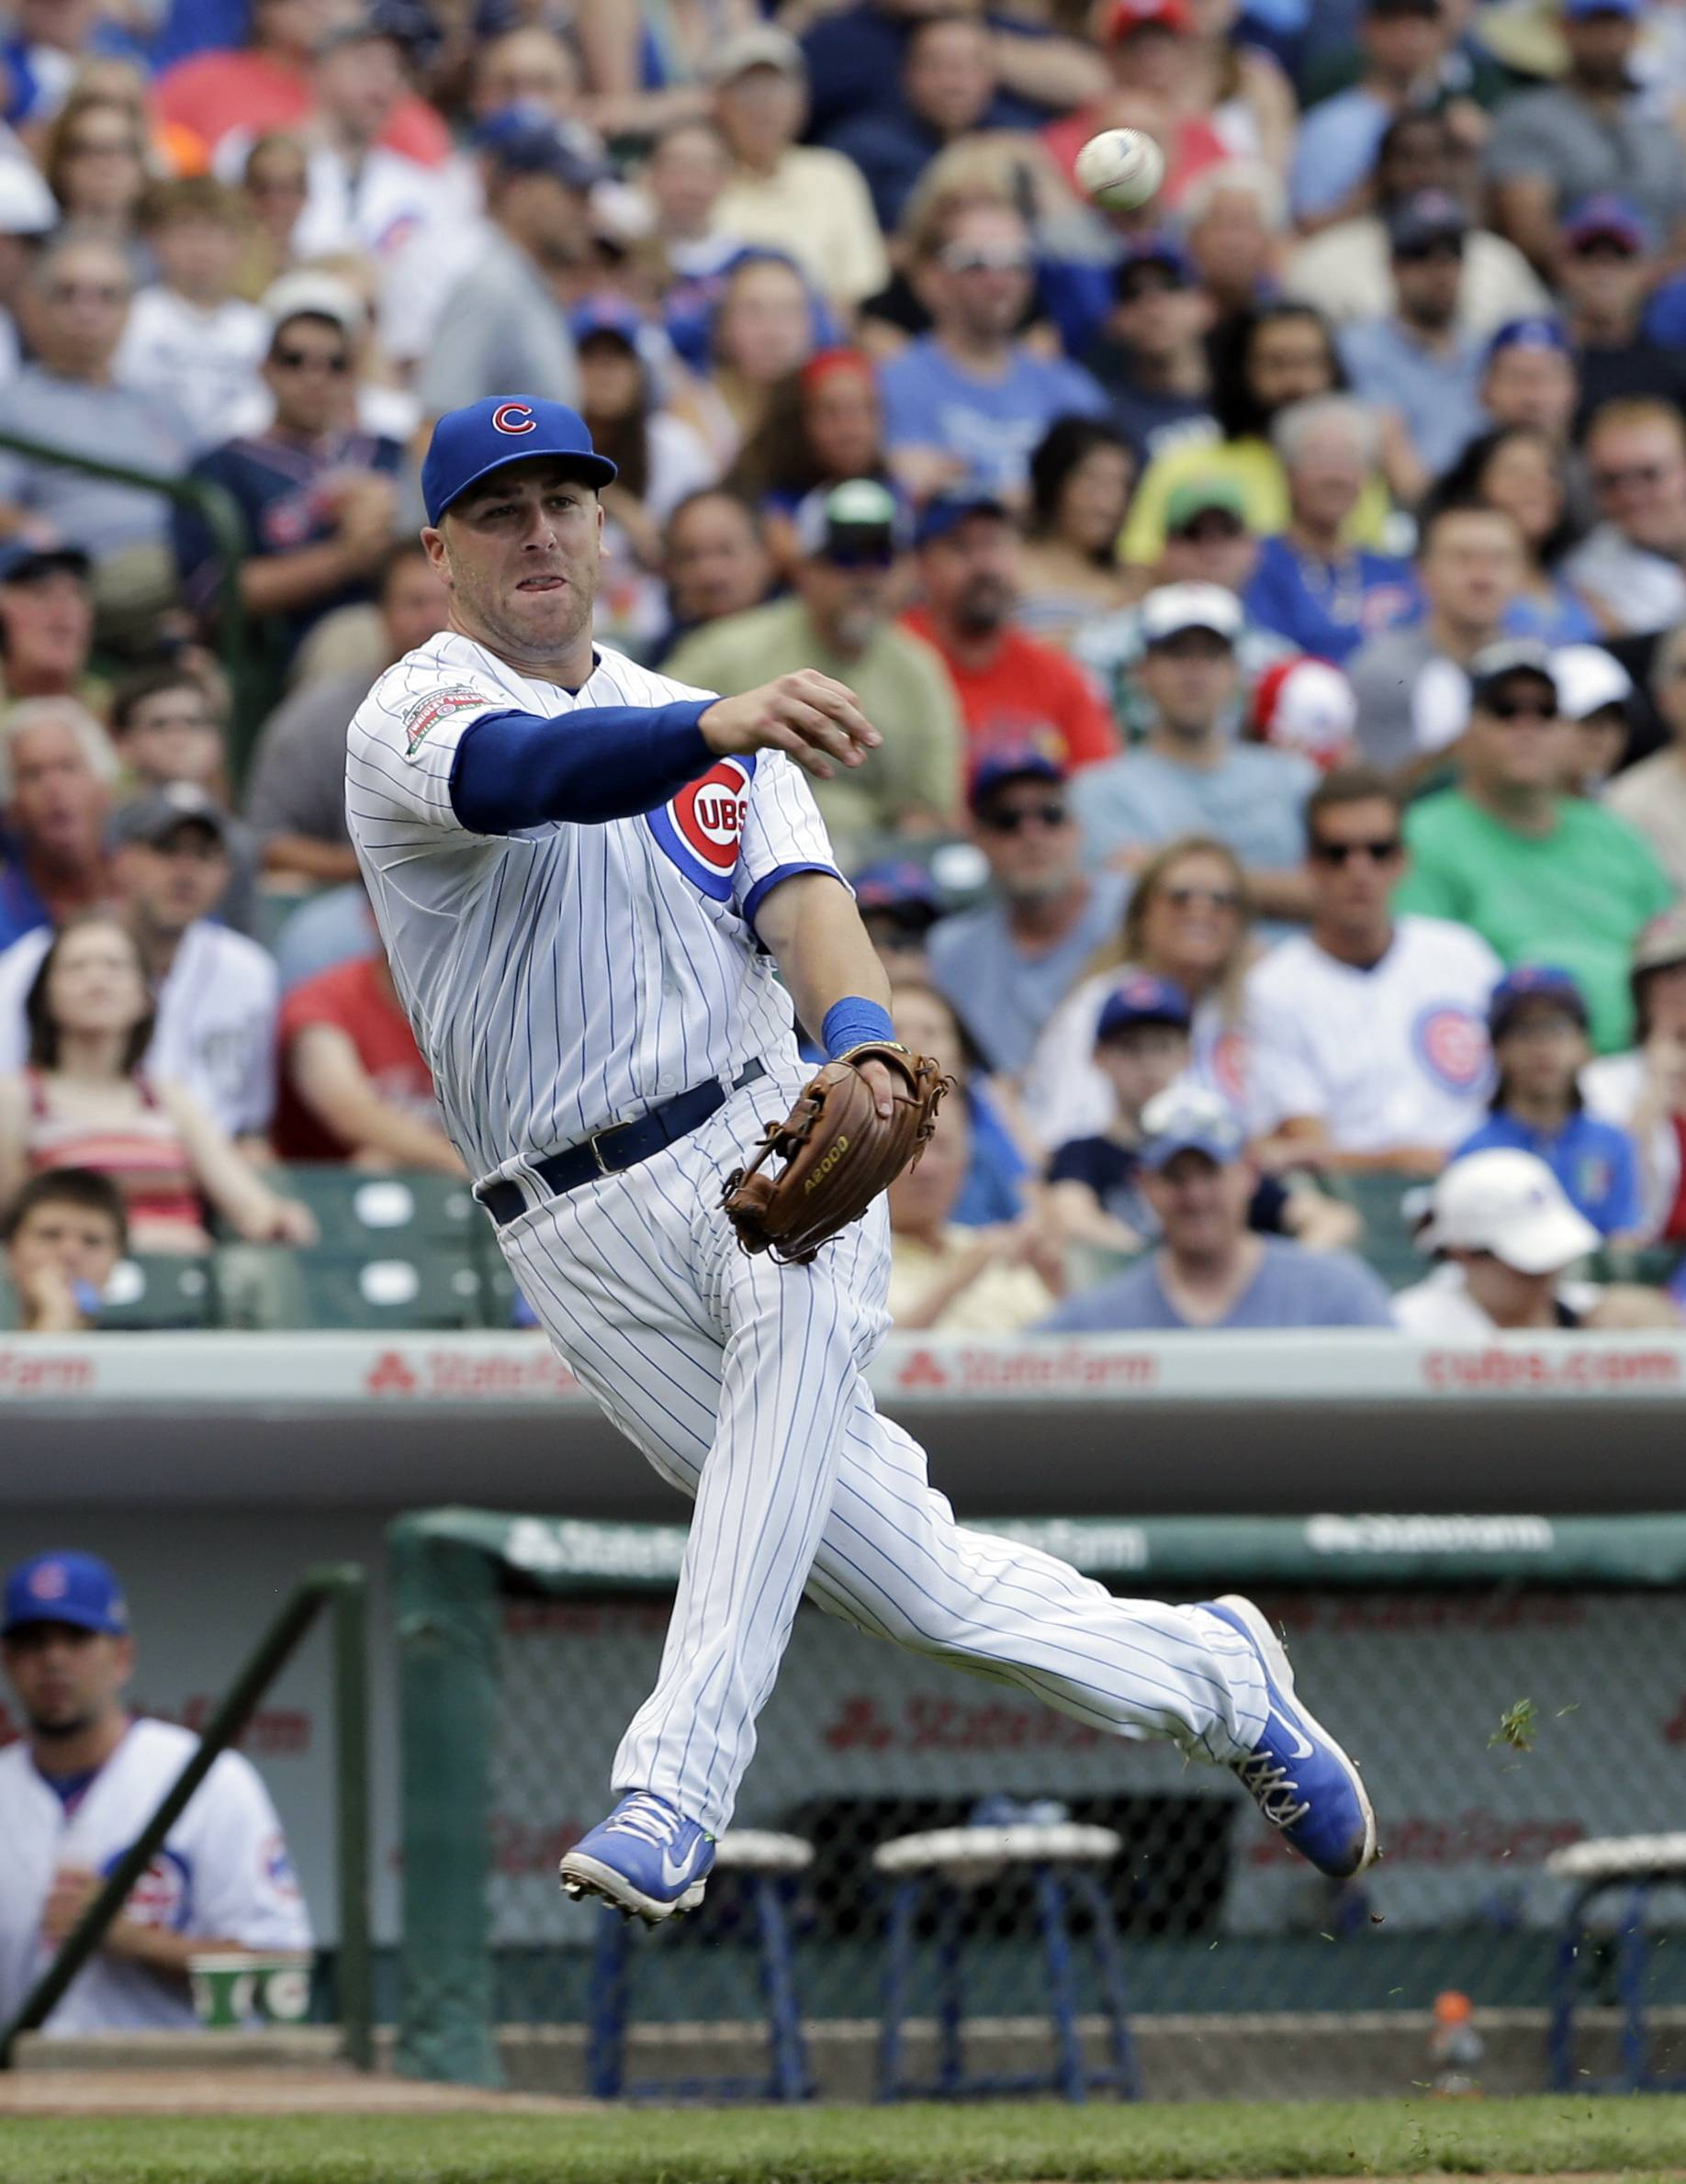 Chicago Cubs third baseman Mike Olt throws to first after Washington Nationals' Denard Span hit a bunt during the sixth inning of a baseball game Saturday at Wrigley Field.